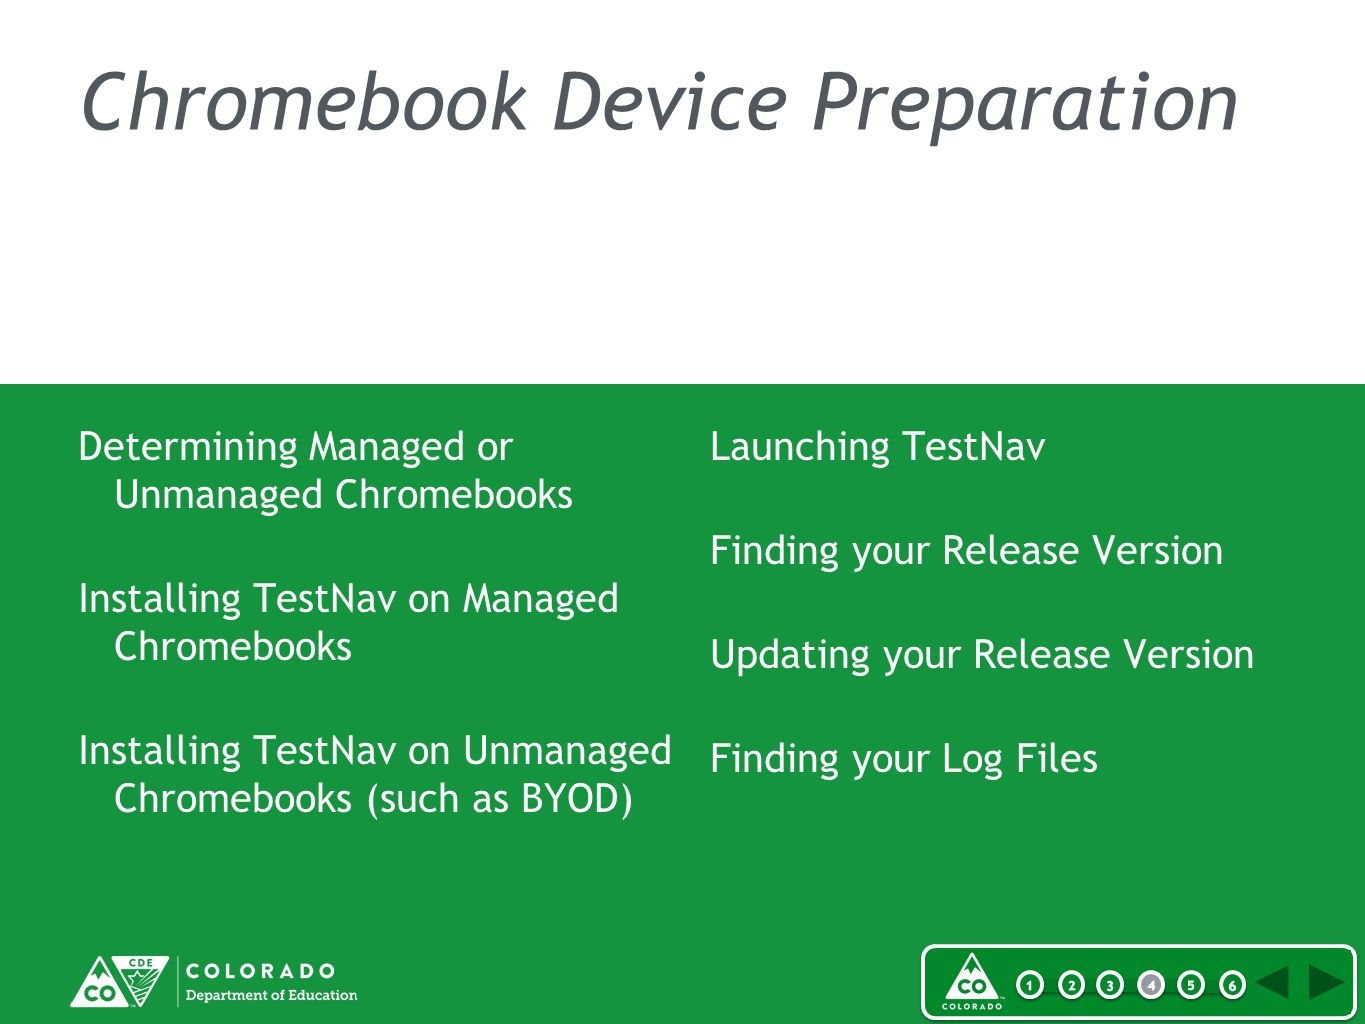 Chromebook Device Preparation Determining Managed or Unmanaged Chromebooks Installing TestNav on Managed Chromebooks Installing TestNav on Unmanaged Chromebooks (such as BYOD) Launching TestNav Finding your Release Version Updating your Release Version Finding your Log Files